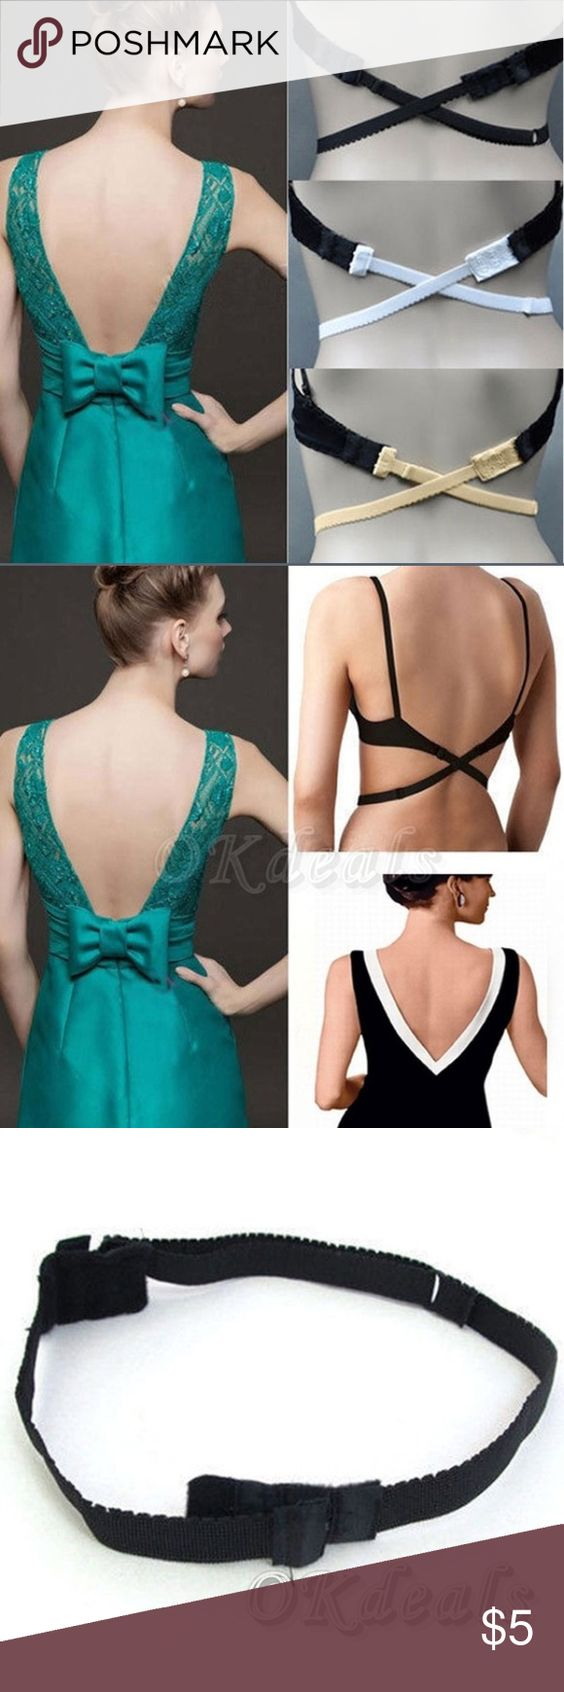 7 Tips to Hide Your Bra Straps